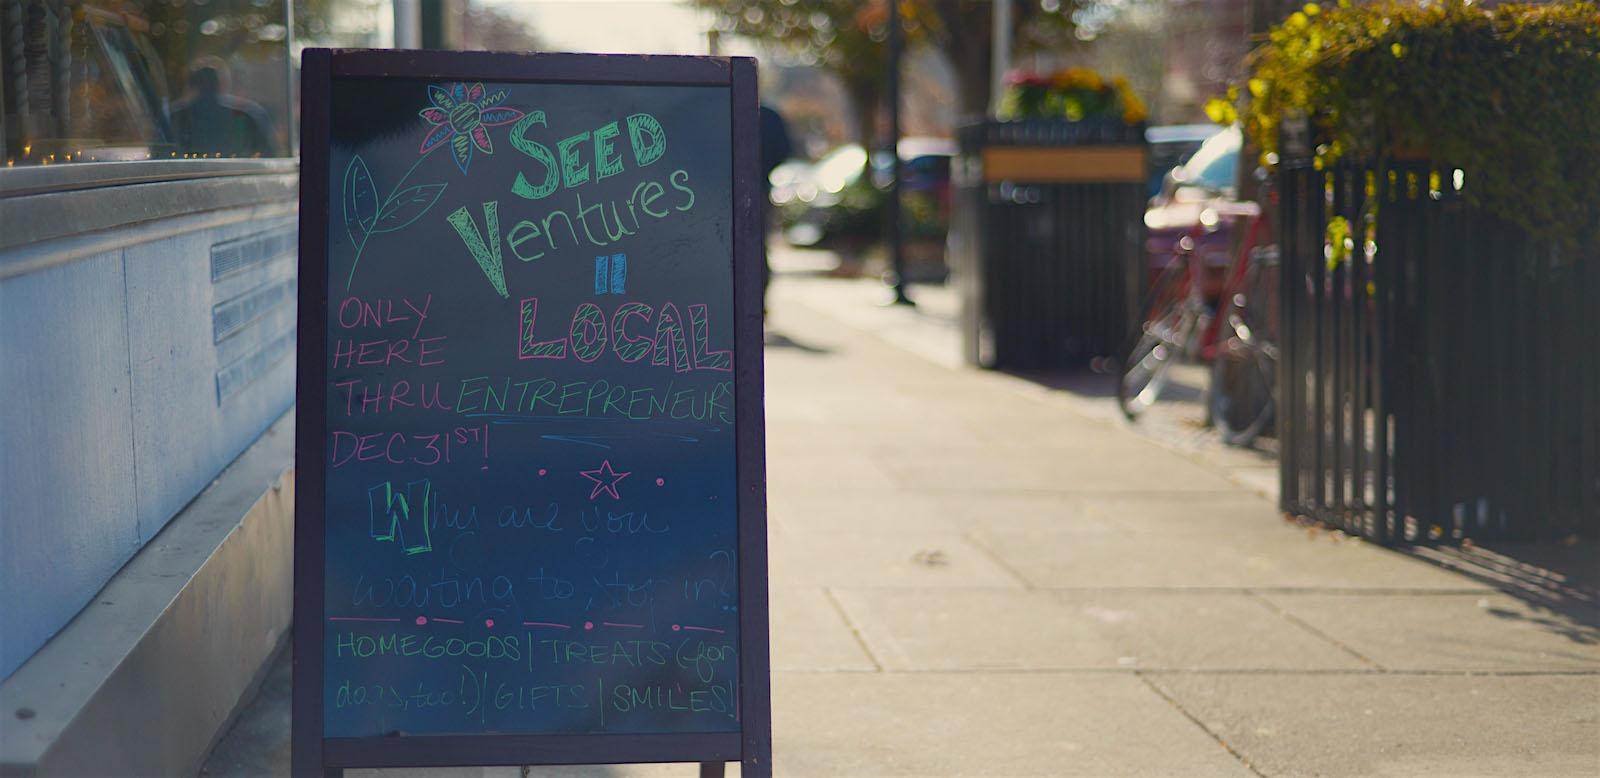 A hand-drawn sign by a storefront reads Seed Ventures - Local Entrepreneurs. Only open thru Dec 31st! Why are you waiting to stop in? Home goods, treats (for dogs too), gifts, smiles!